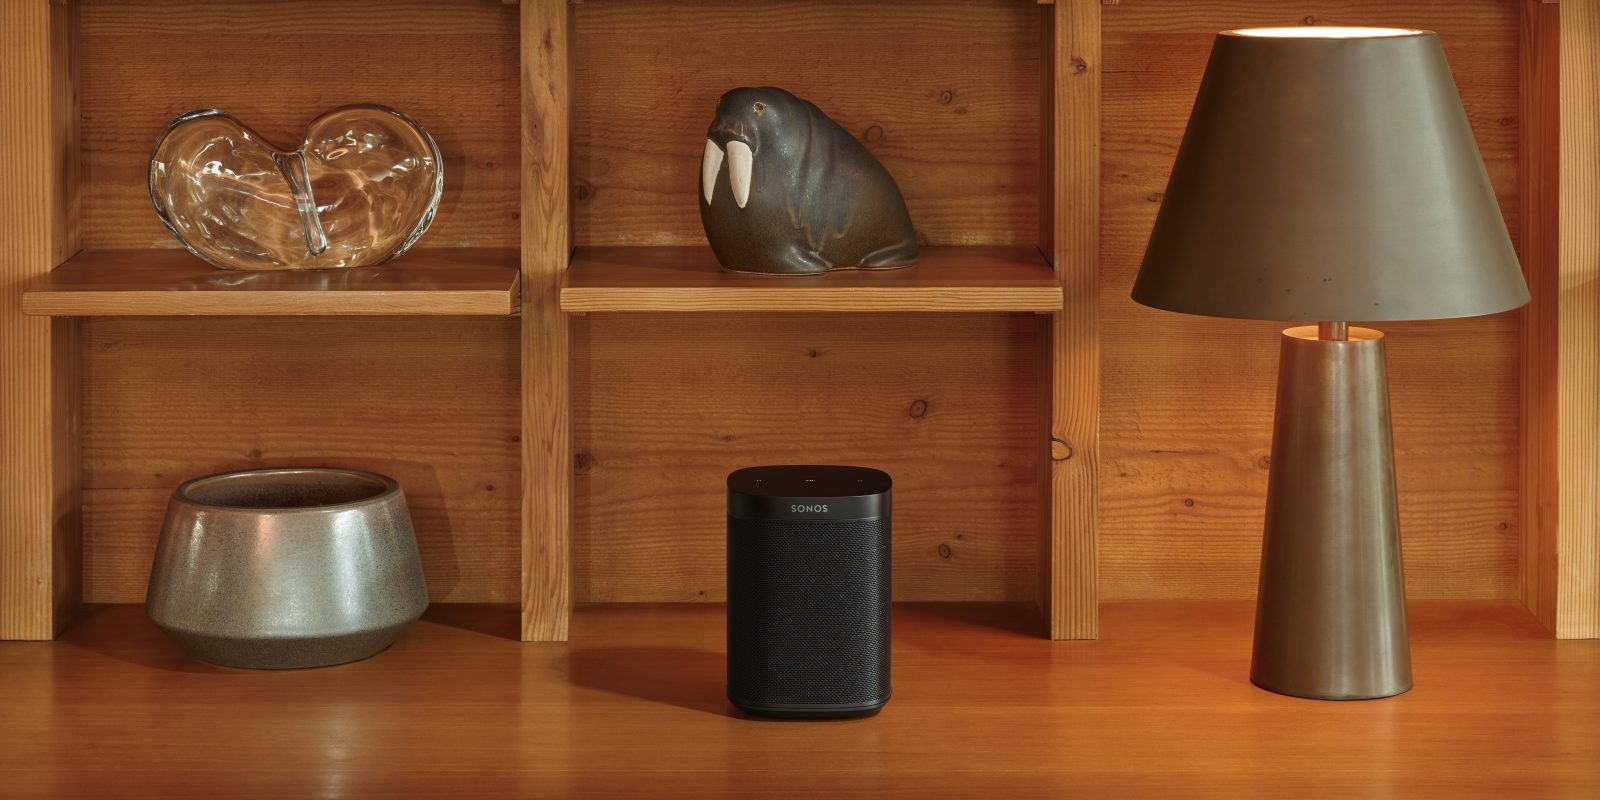 Apple selling Sonos without Alexa or Assistant as speaker company says Google and Amazon stole patents